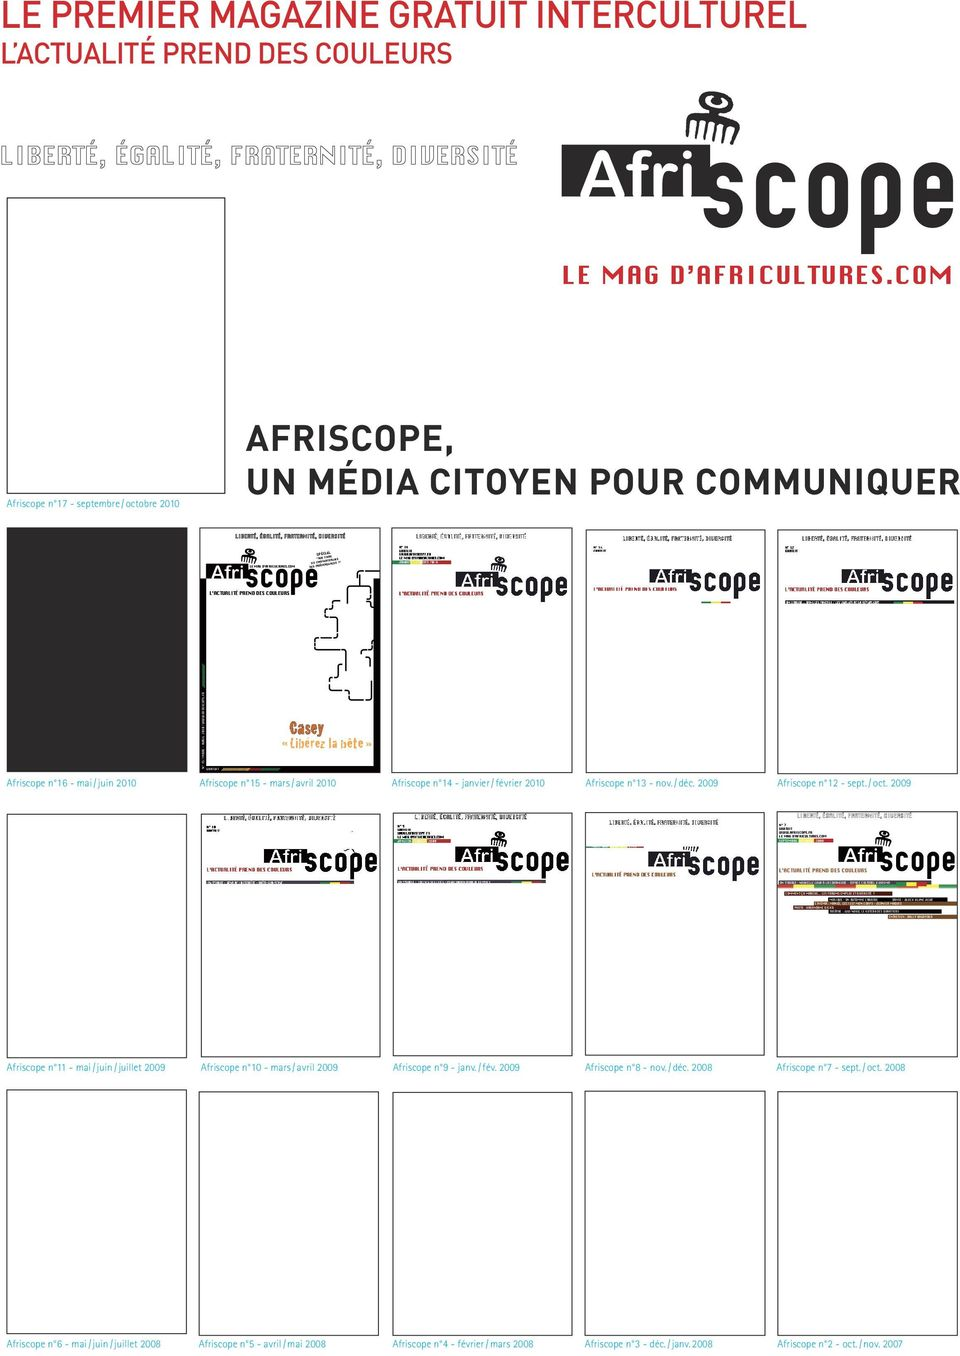 Afriscope n 16 - mai / juin 2010 #ASEY >,IBmR EZ L A BoTE > N 15 / MARS - AVRIL 2010 / WWW.AFRISCOPE.